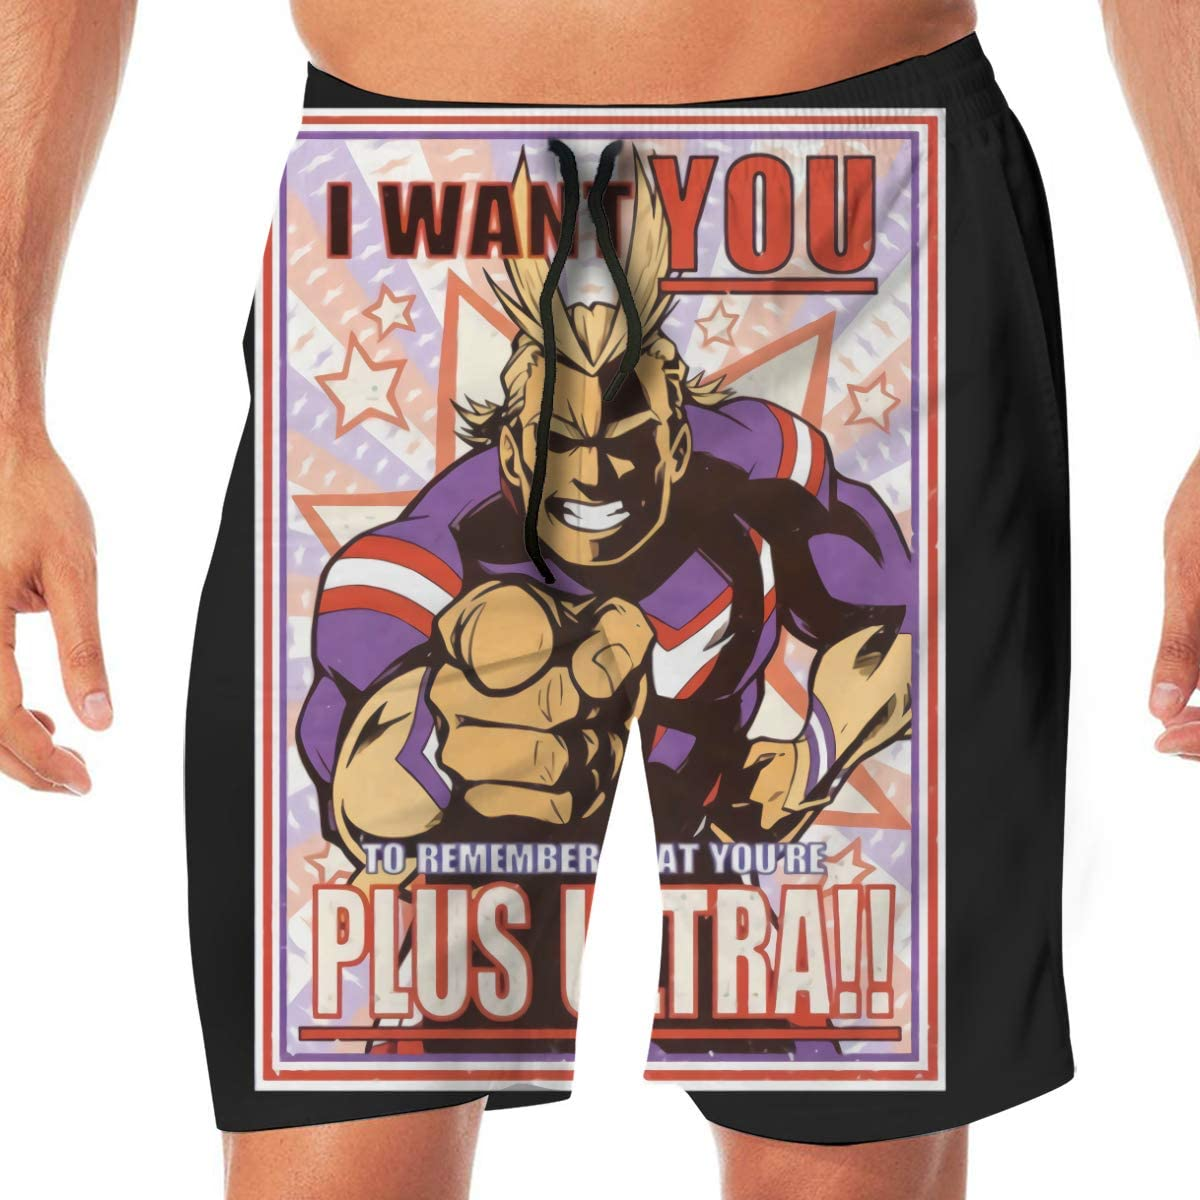 Plus Ultra Gym All Might My Hero Academia Anime Quick DrySwim Trunks Water Shorts Swimsuit Beach Shorts